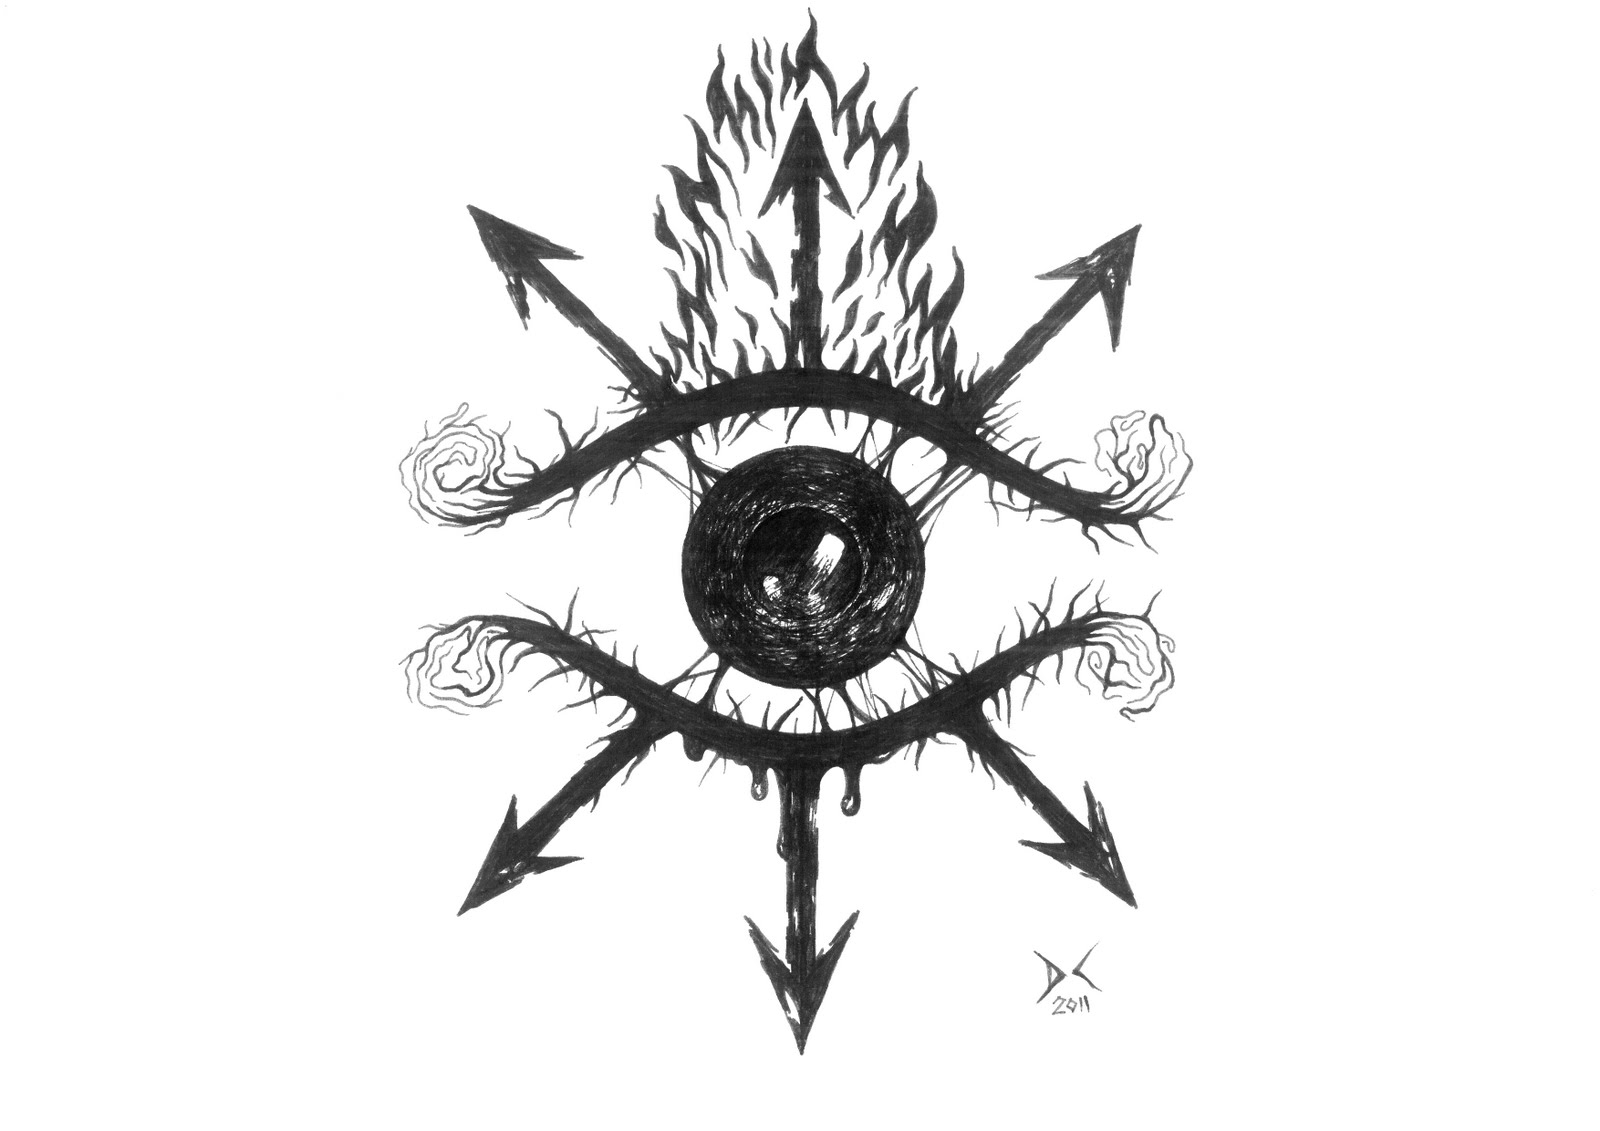 Hatred Engine Graphics Chaotic Tattoo Designs Taken